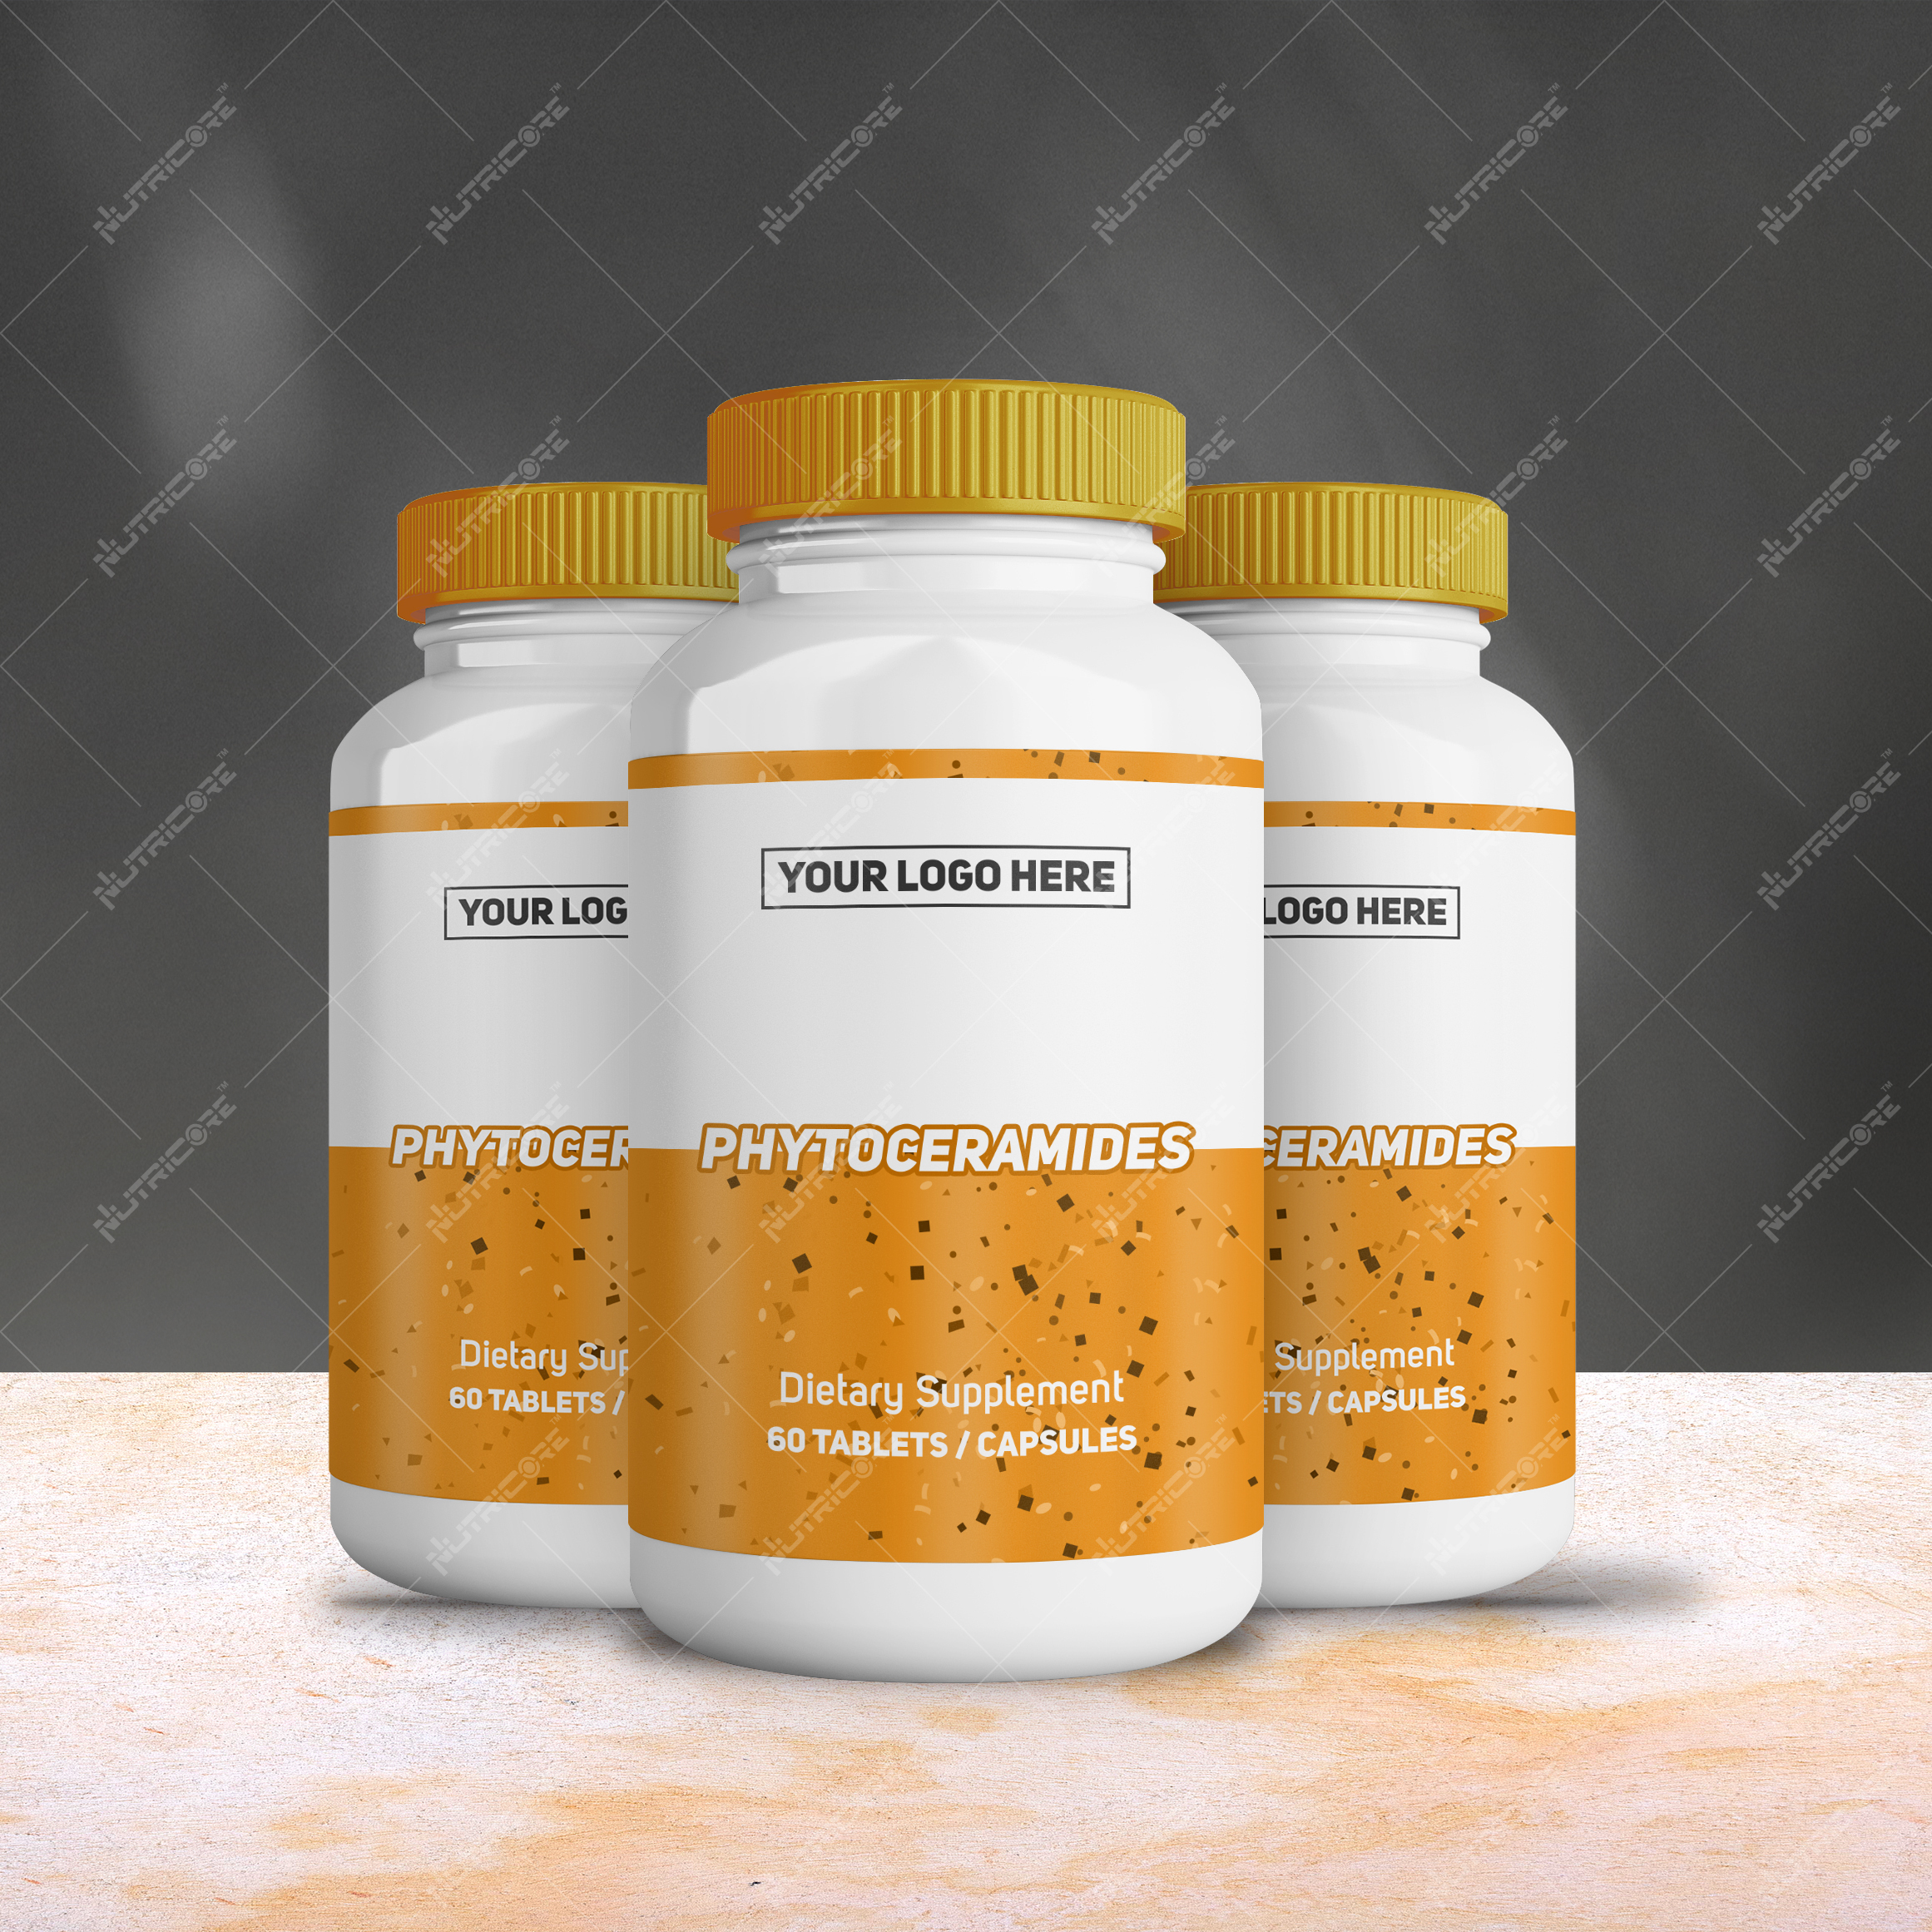 PHYTOCERAMIDES Tablets/ Capsules (Third Party Manufacturing)